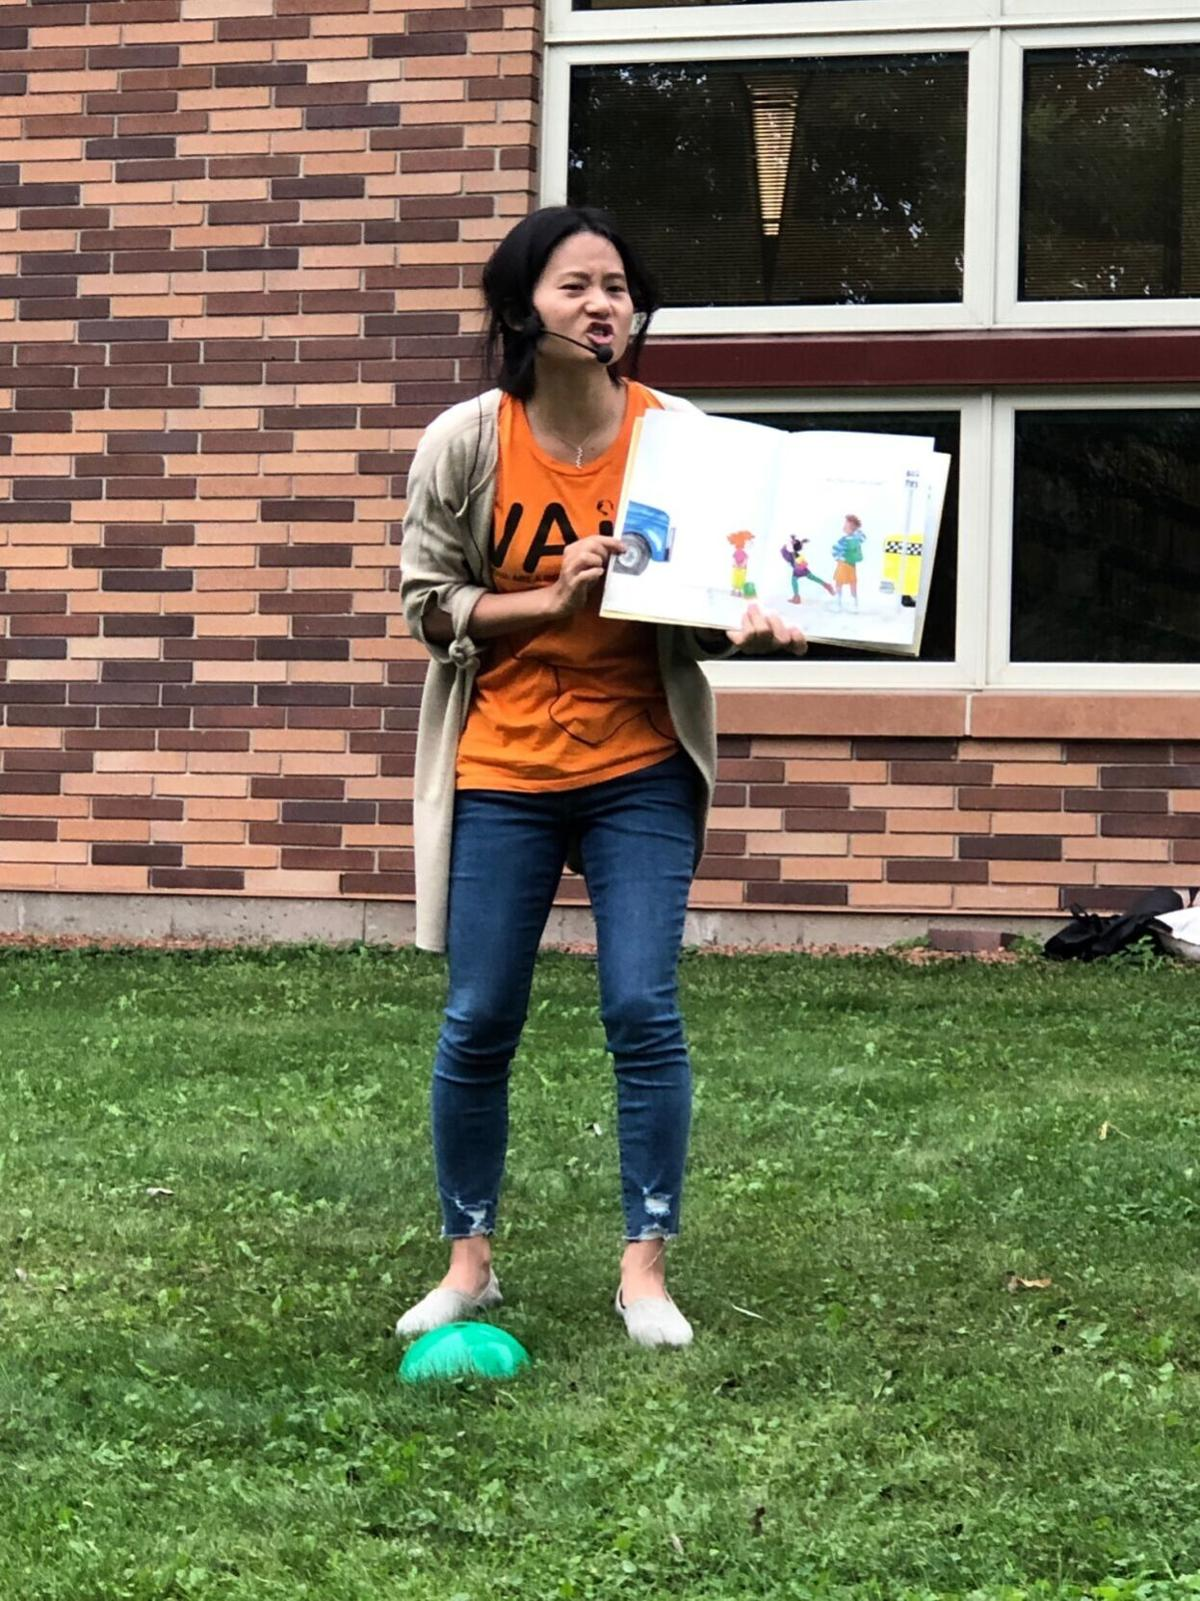 VAIS holds a multi-language storytime